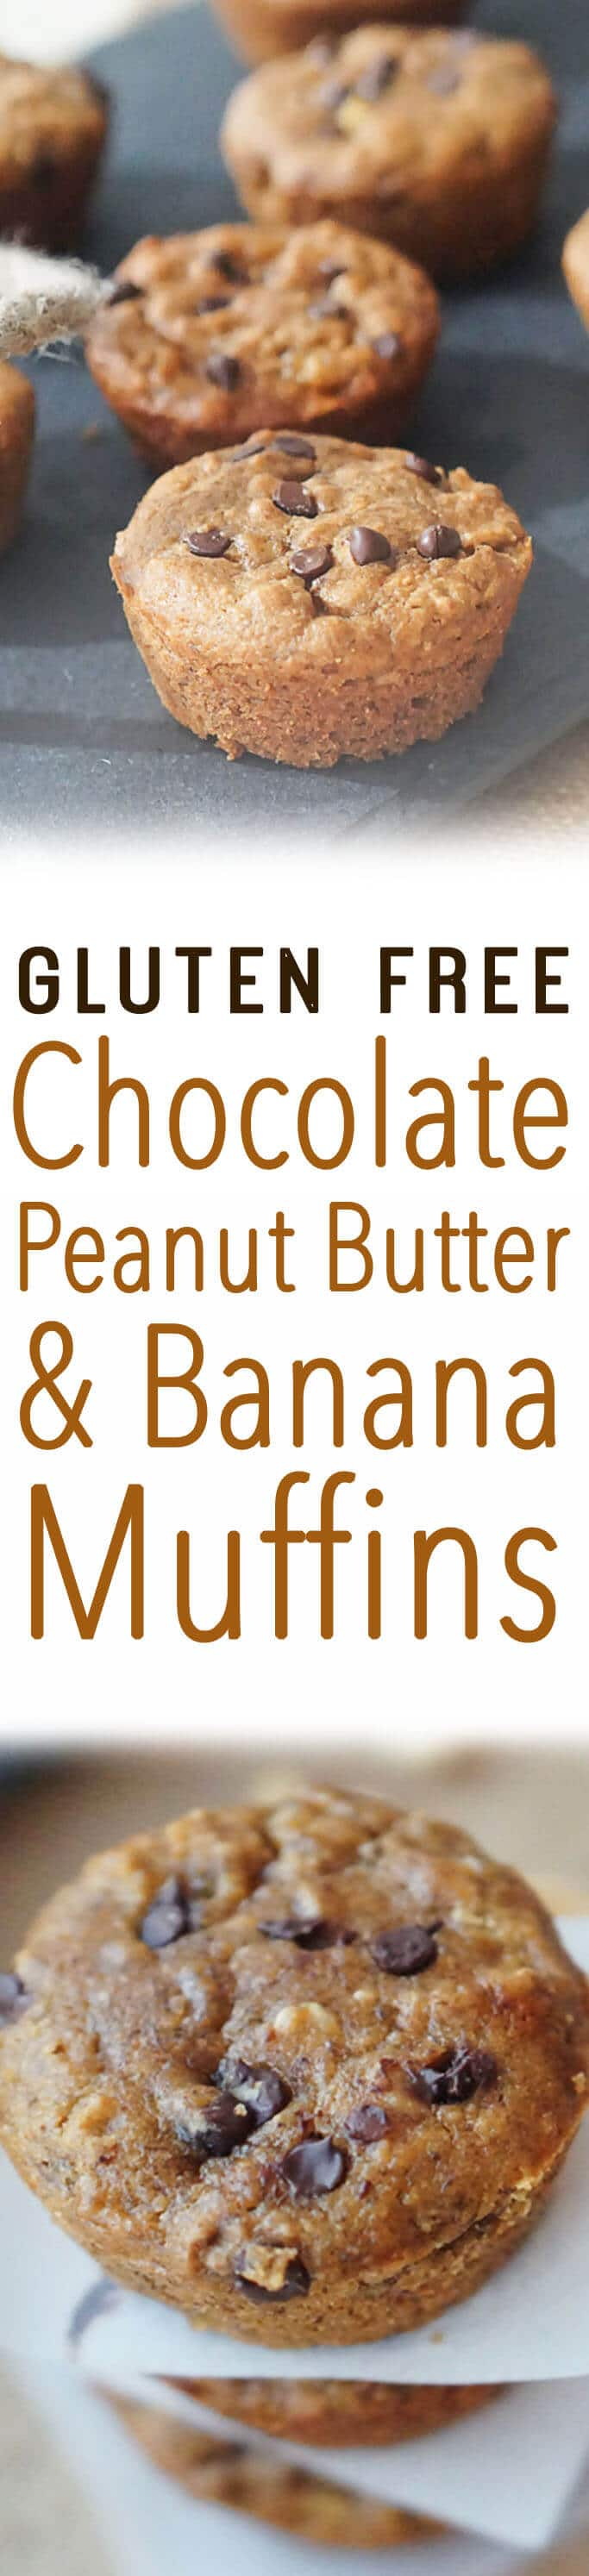 "A pinterest image of muffins with text overlay ""Gluten Free Chocolate Peanut Butter & Banana Muffins.\"""